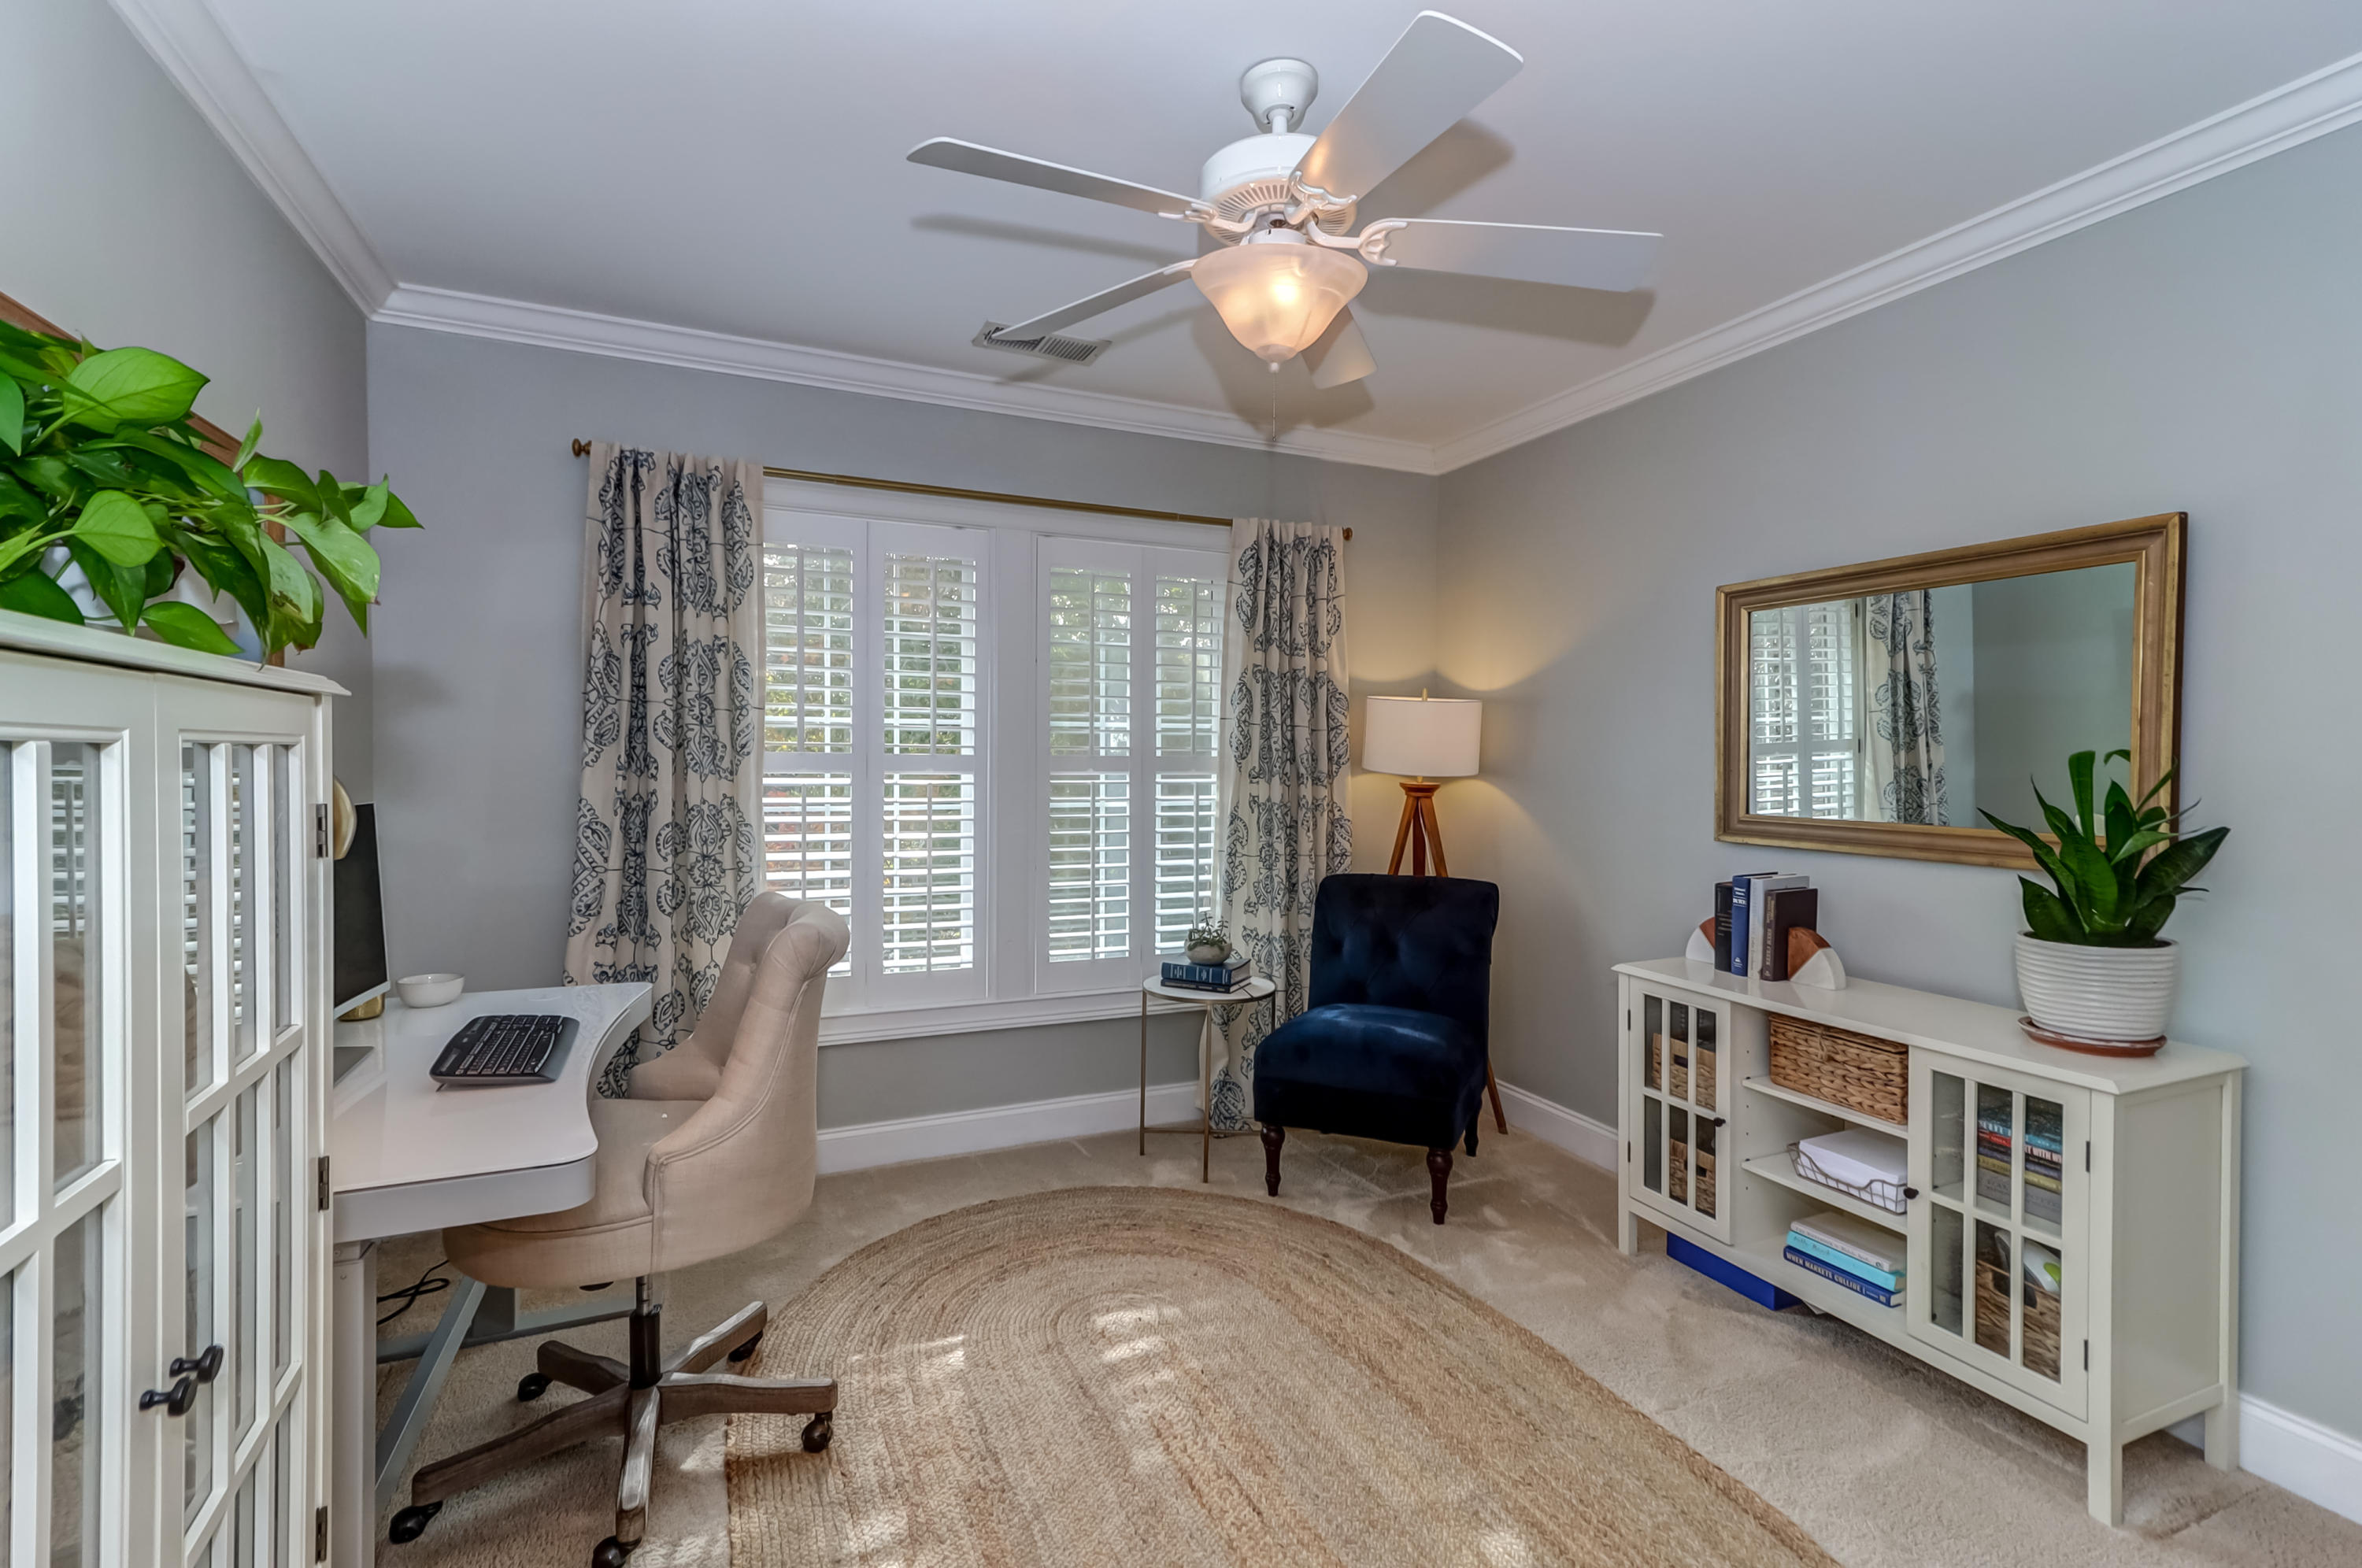 Woodward Pointe Homes For Sale - 657 White Chapel, Charleston, SC - 22